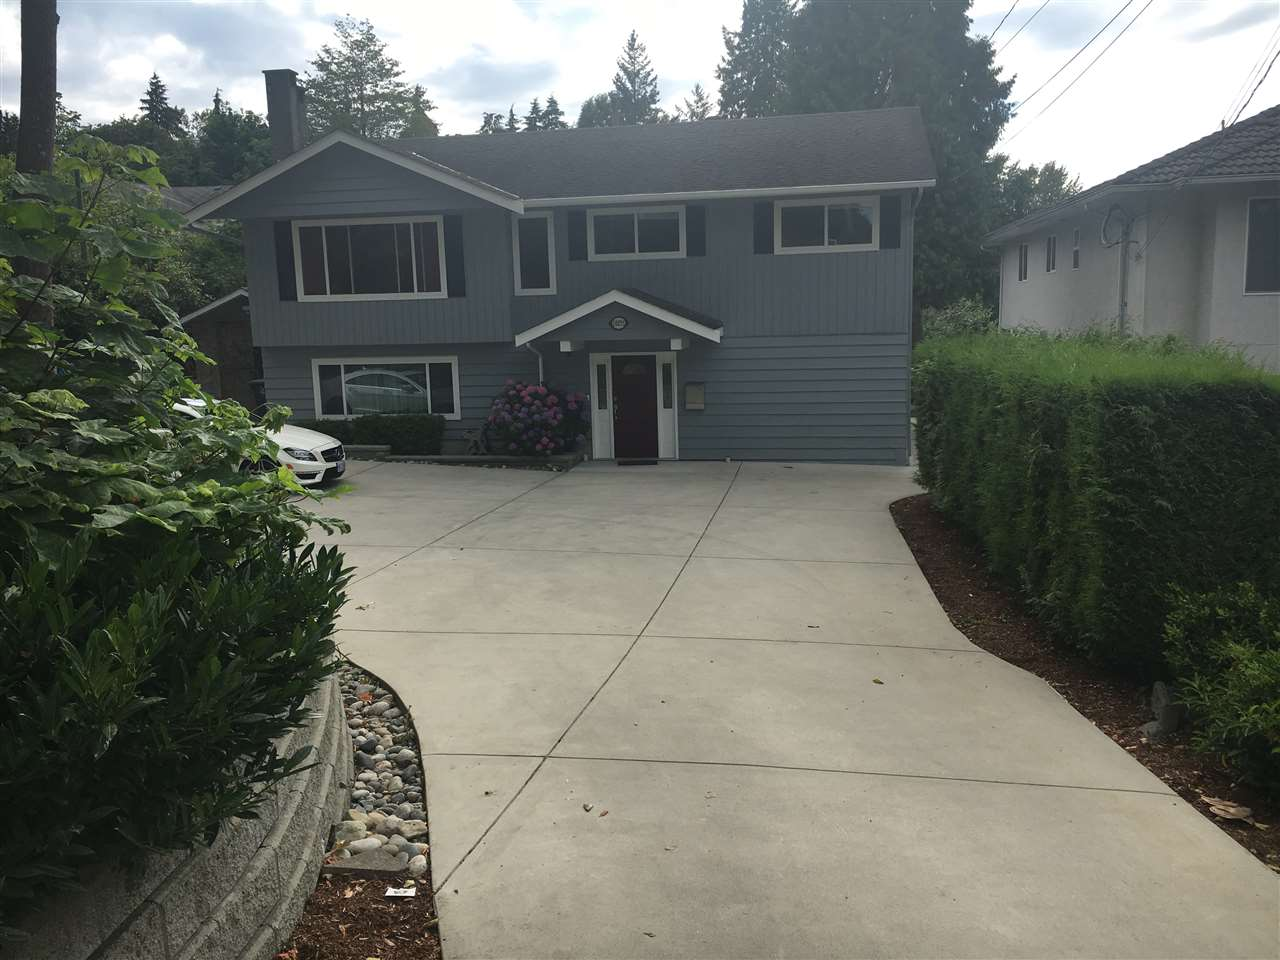 A well-kept 4BR, 2 full bath, 2-level home located NOT along busy Scott Rd but on a quiet setting away from traffic. Renovated new Kitchen with S/S appliances, built-in wall oven w/microwave, induction cooktop w/chimney hood, quartz countertop, ample cupboard space & tiled flooring. Relax on the covered 18'x10' deck off the dining rm. Front & back yards are fully landscaped with retaining walls & lighting. Huge concrete parking for 6 or RV. Adequate space for kids or pets to play around. A short walk to transit & close to schools, Skytrain & Pattullo Bridge. OPEN HOUSE SAT JULY 29TH 1:30-3:30PM & SUN JULY 30TH 2-4PM